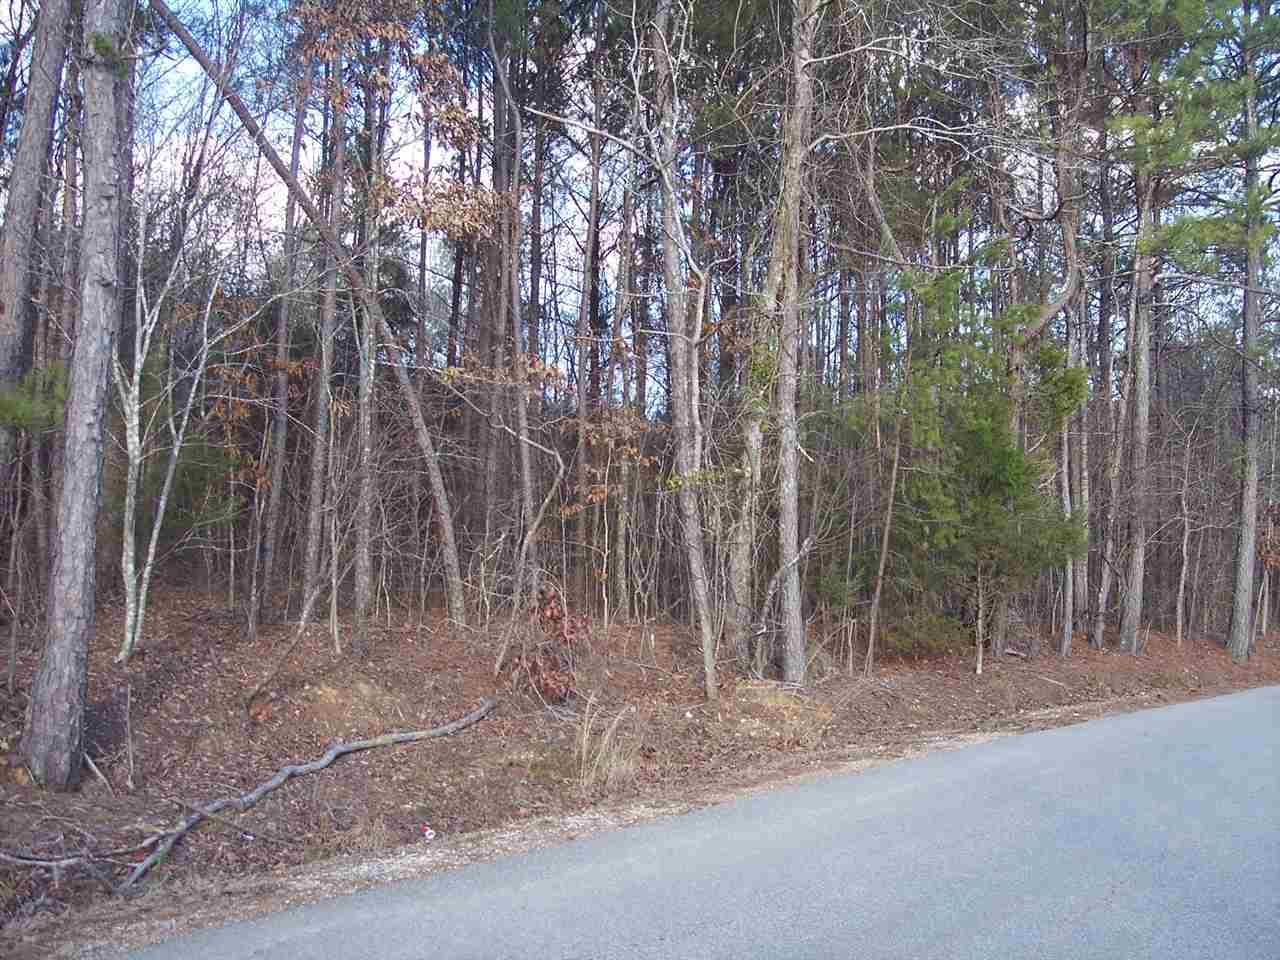 004 Dripping Rock Rd - Photo 1